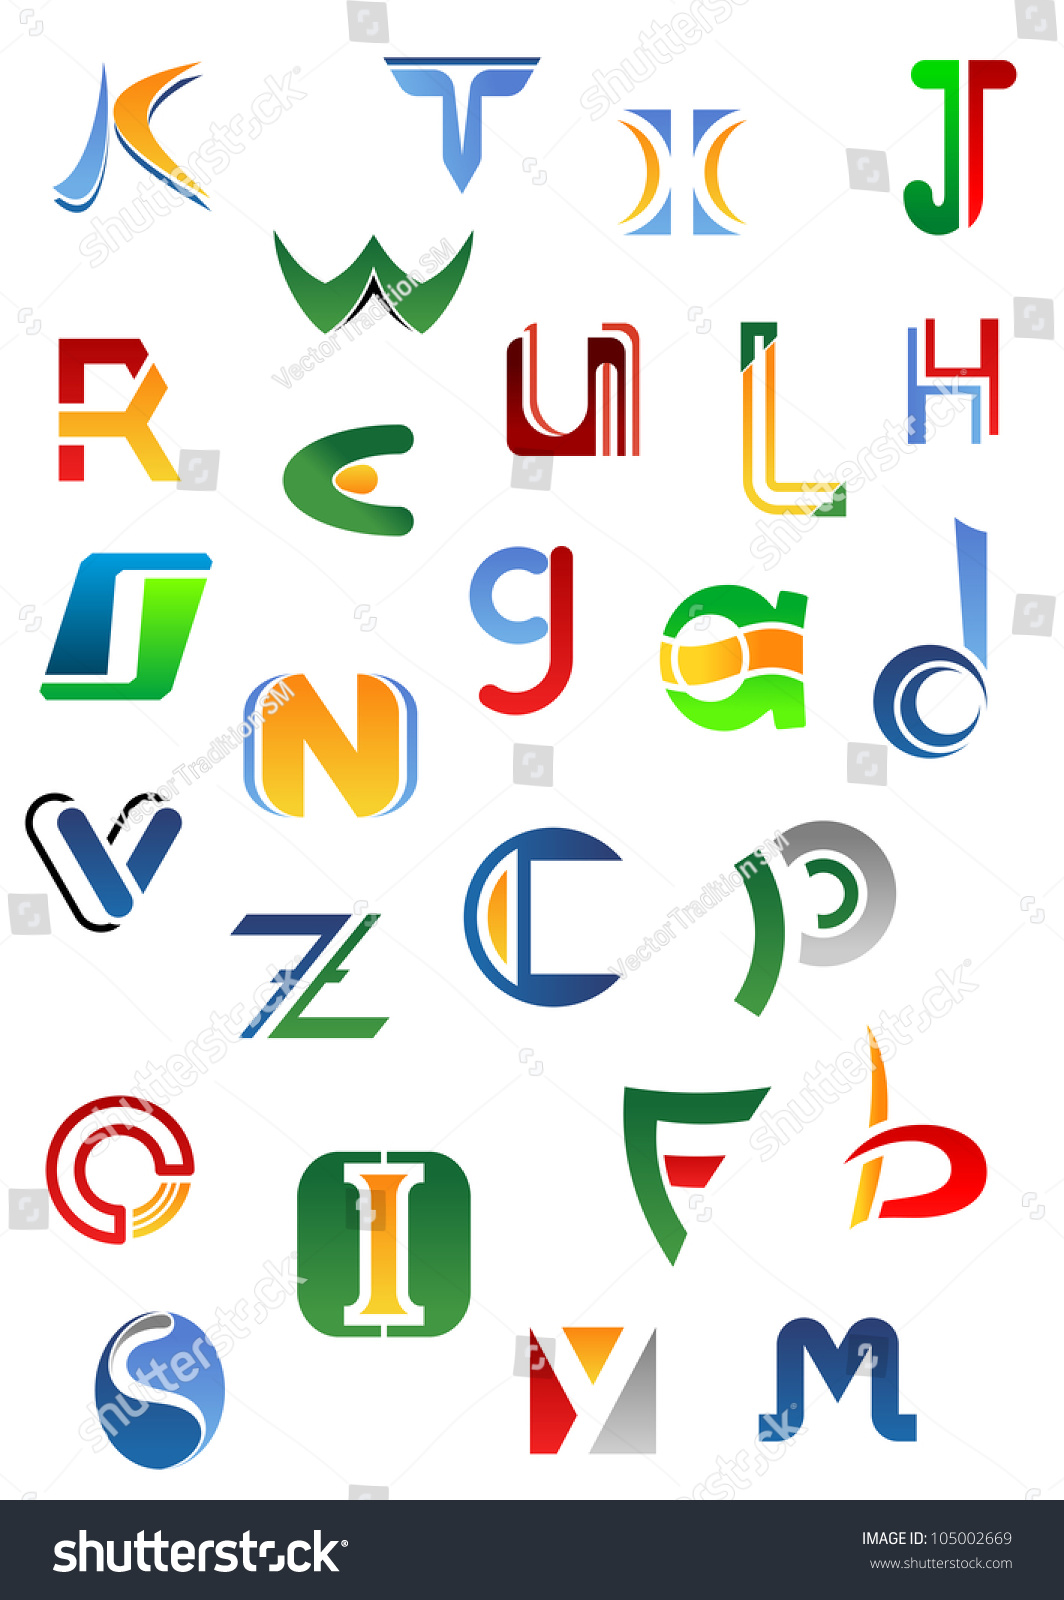 alphabet letters and icons from a to z for design such logo jpeg version also available in